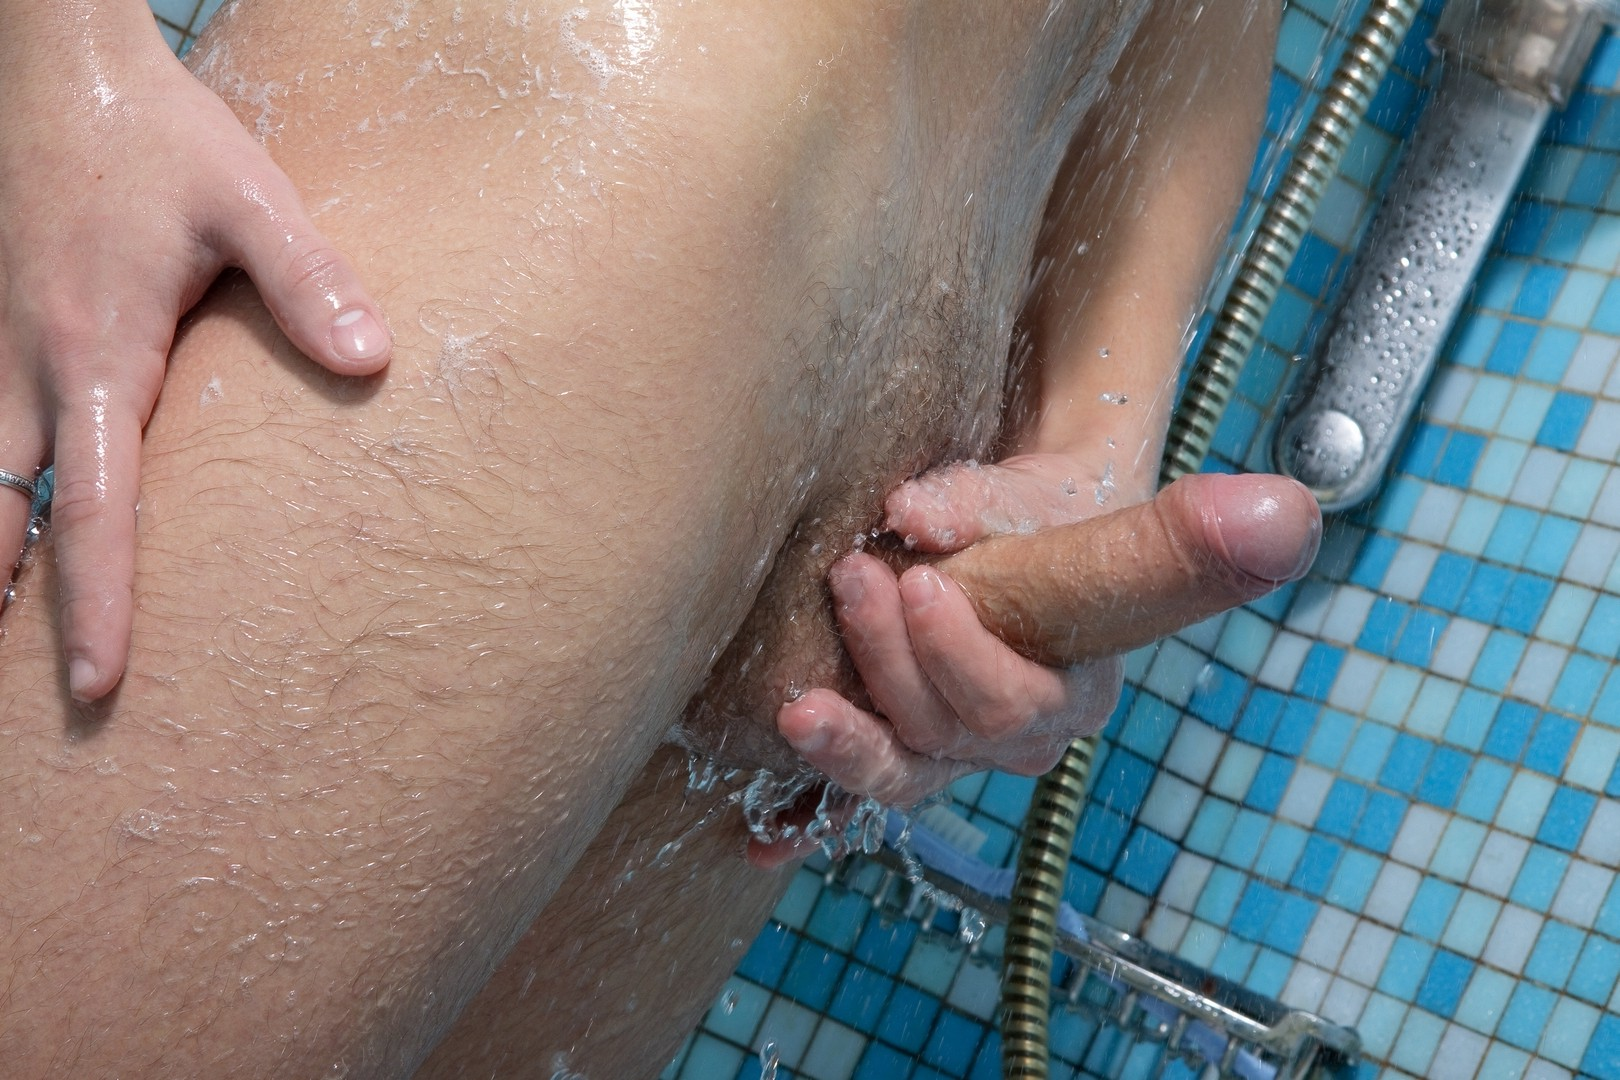 Nude uncut boy jerking off in the shower